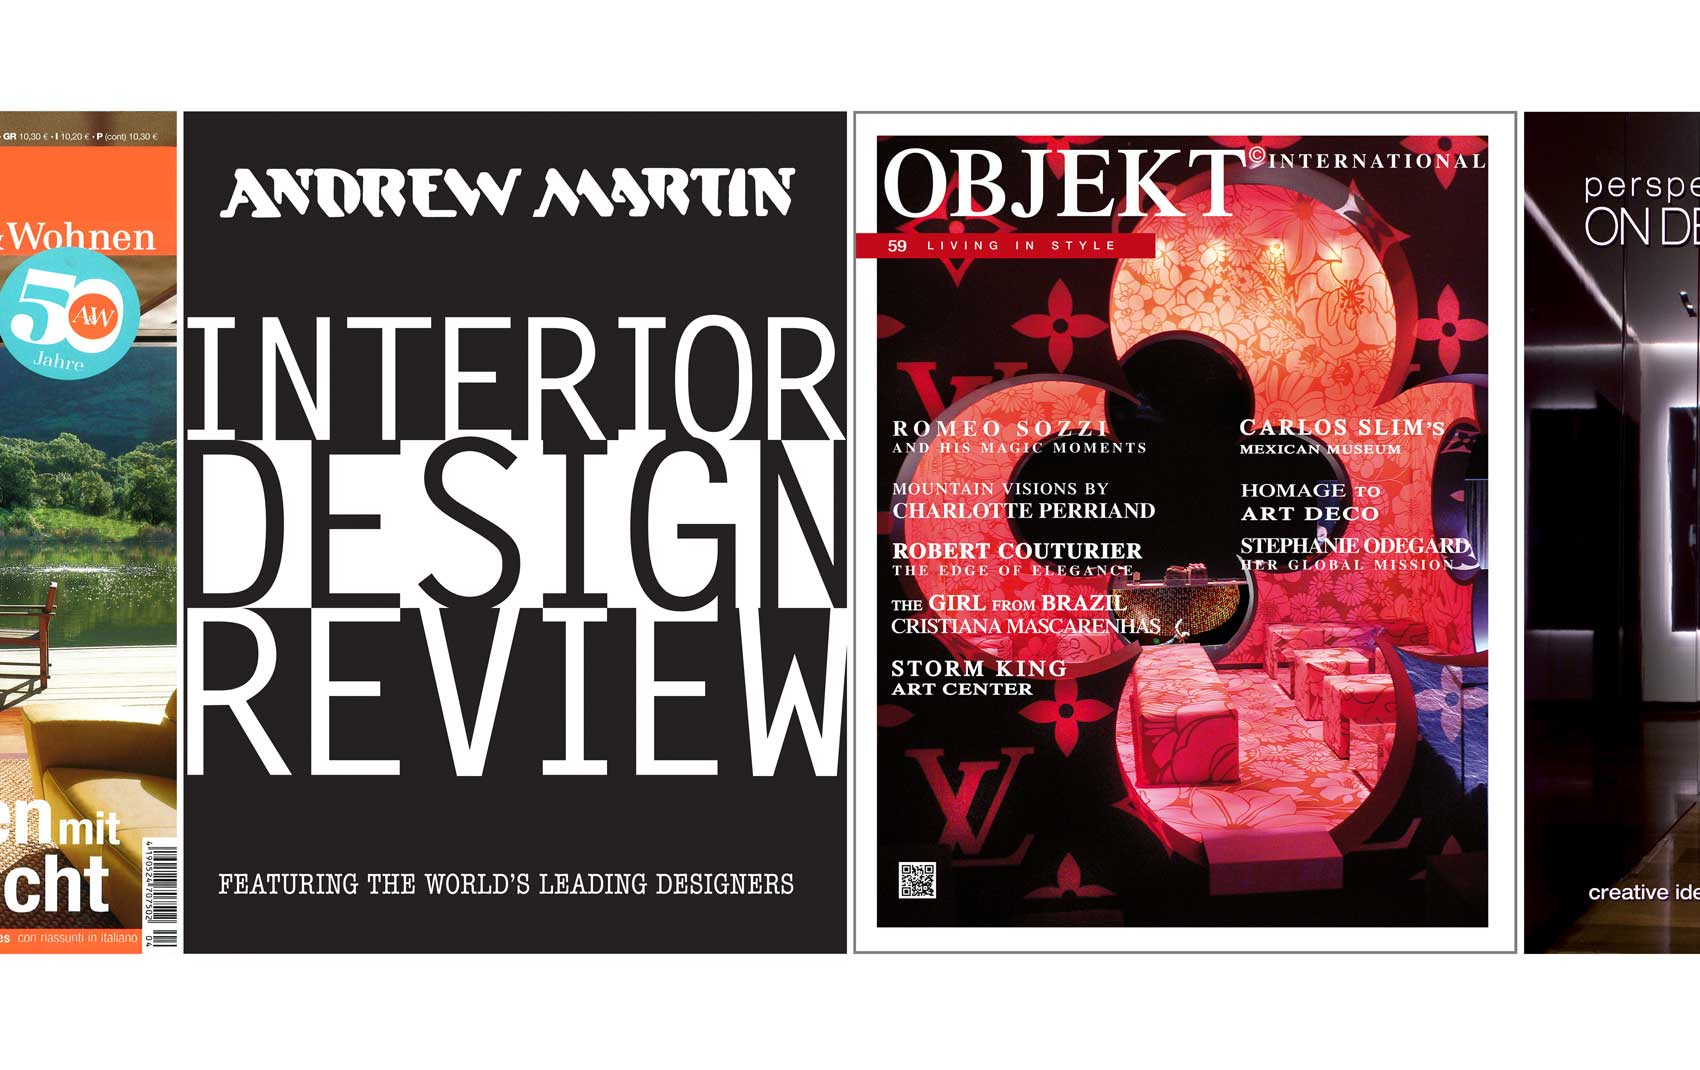 Interior Design Review and Objekt Magazines